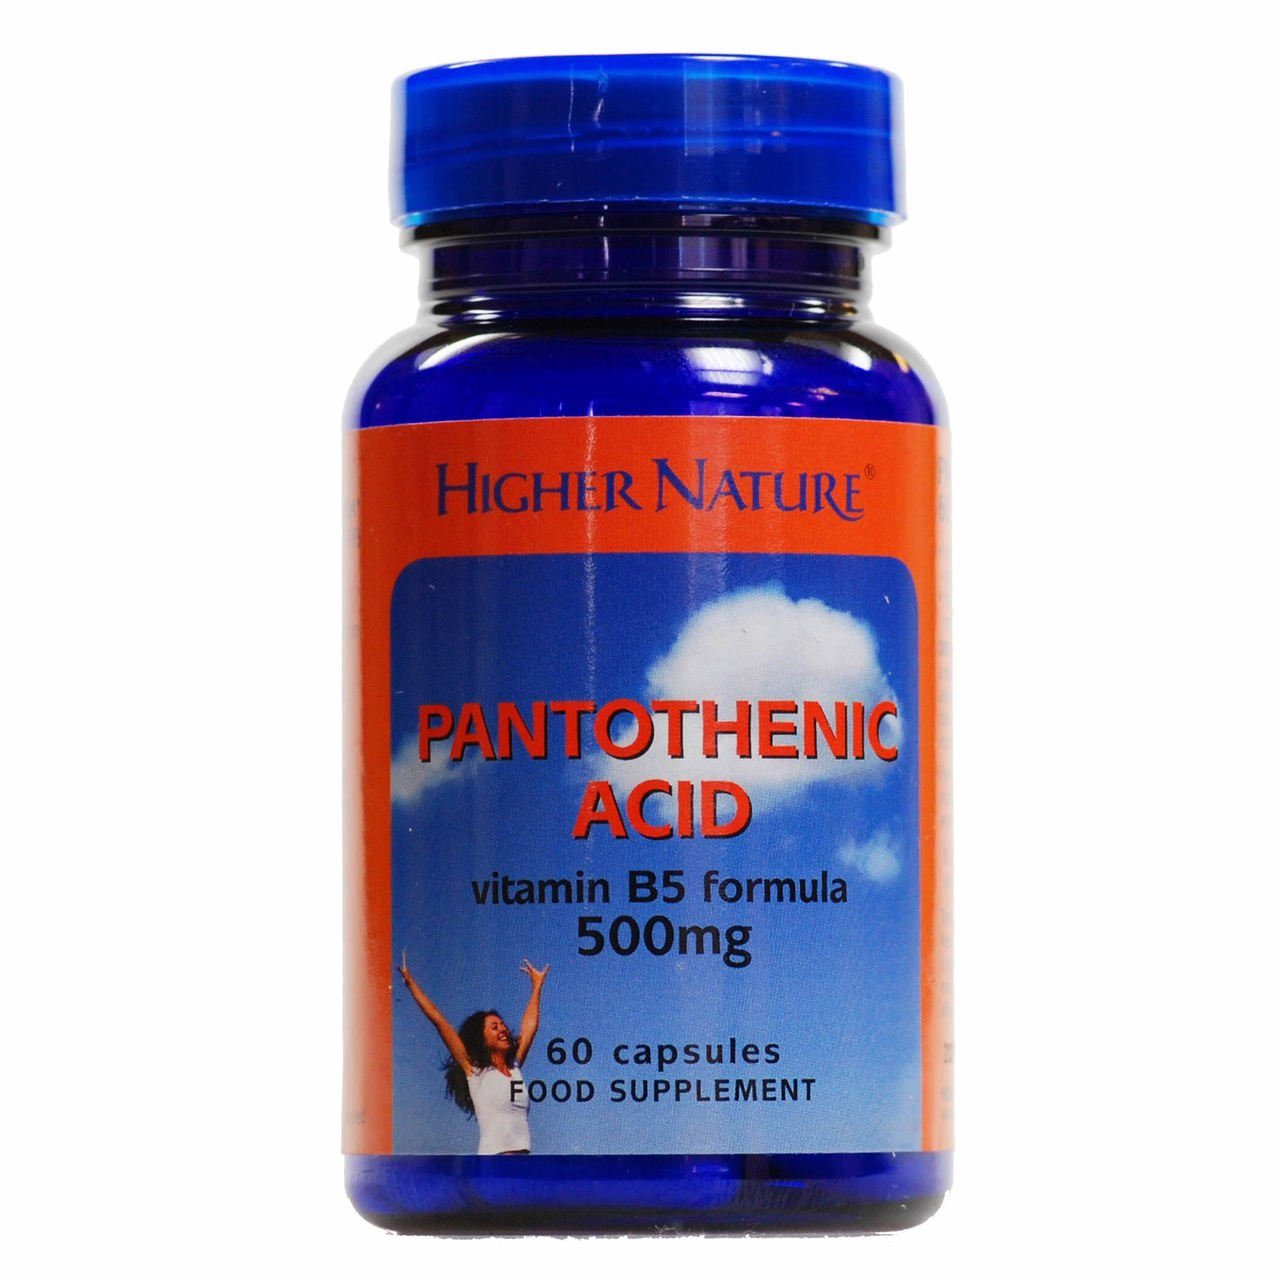 (4 PACK) - Higher Nature - Pantothenic Acid 500mg | 60's | 4 PACK BUNDLE by Higher Nature